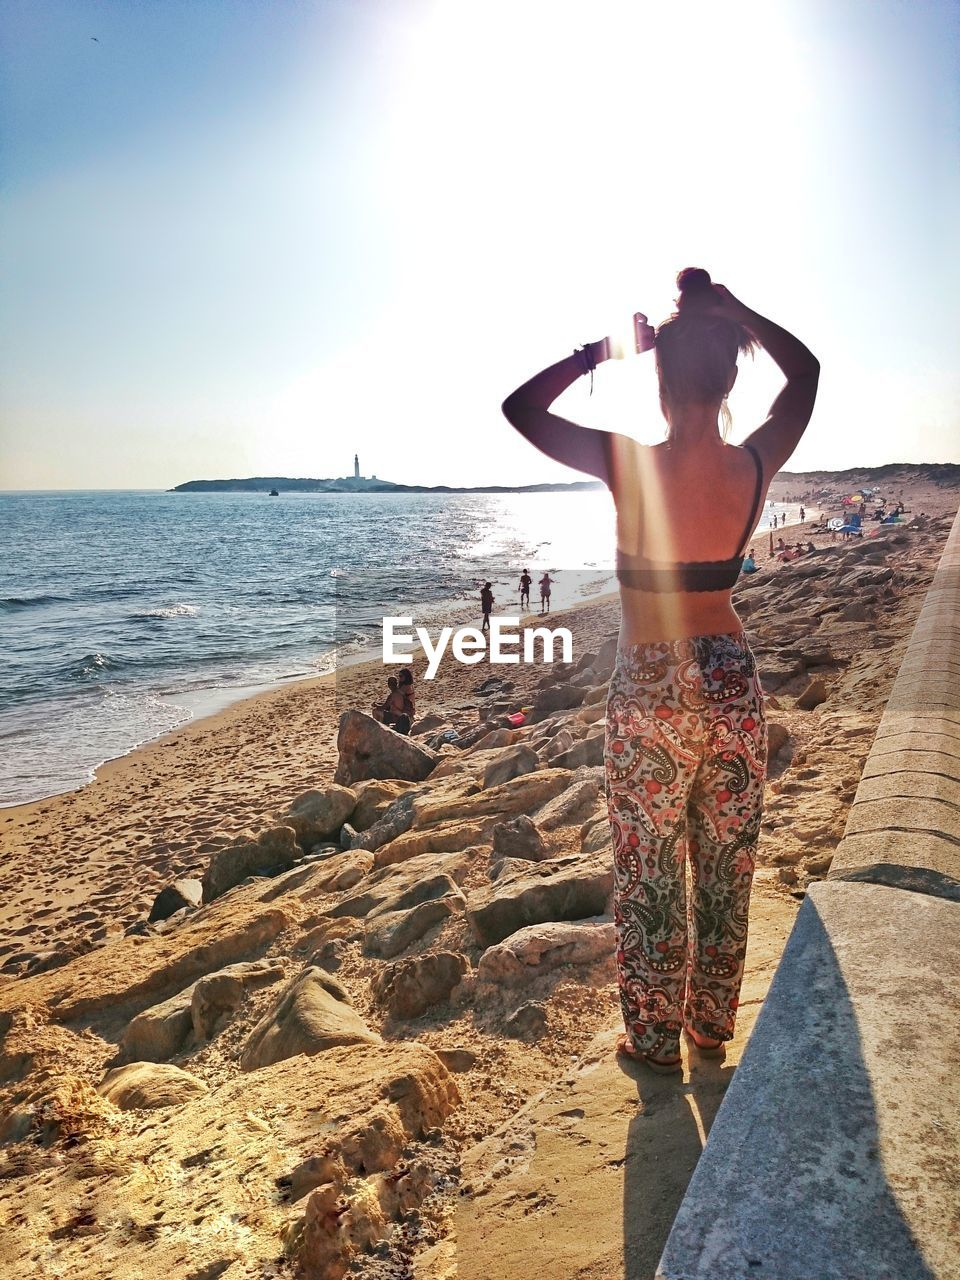 sea, real people, beach, rear view, lifestyles, standing, leisure activity, one person, water, full length, horizon over water, sky, sand, scenics, day, sunlight, beauty in nature, nature, outdoors, men, vacations, women, clear sky, young adult, young women, people